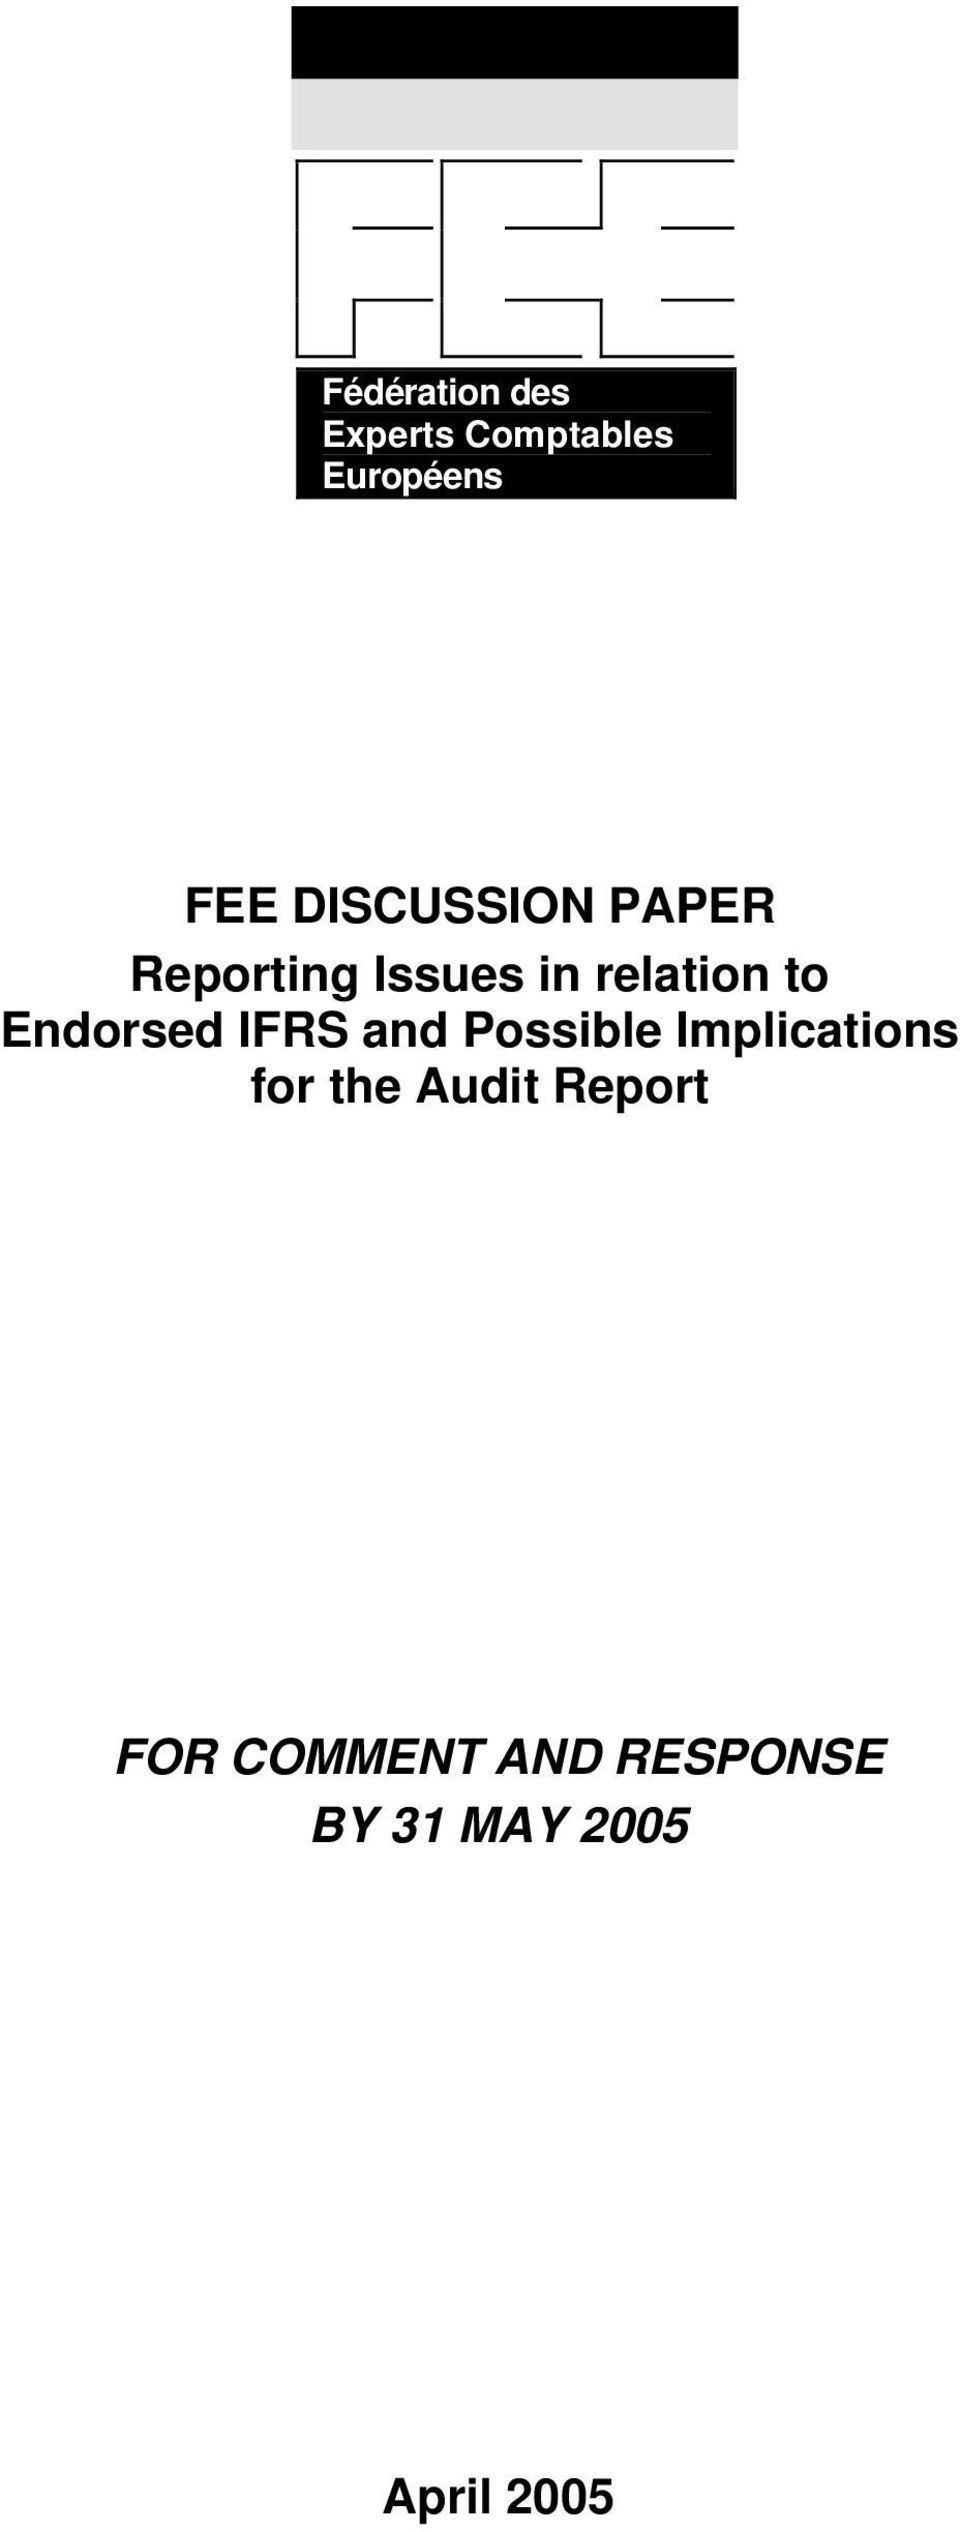 Endorsed IFRS and Possible Implications for the